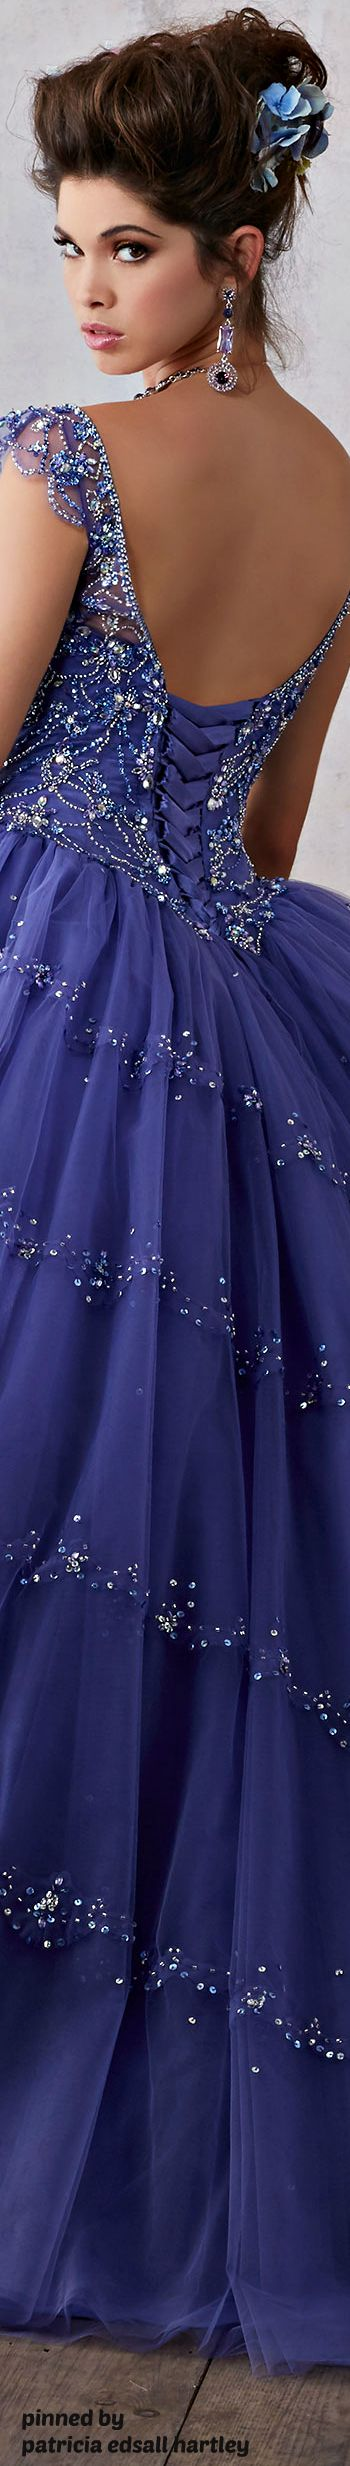 Belleza!!! Blue Iris dress | La Periwinkle, Violet Tulip, Blue ...